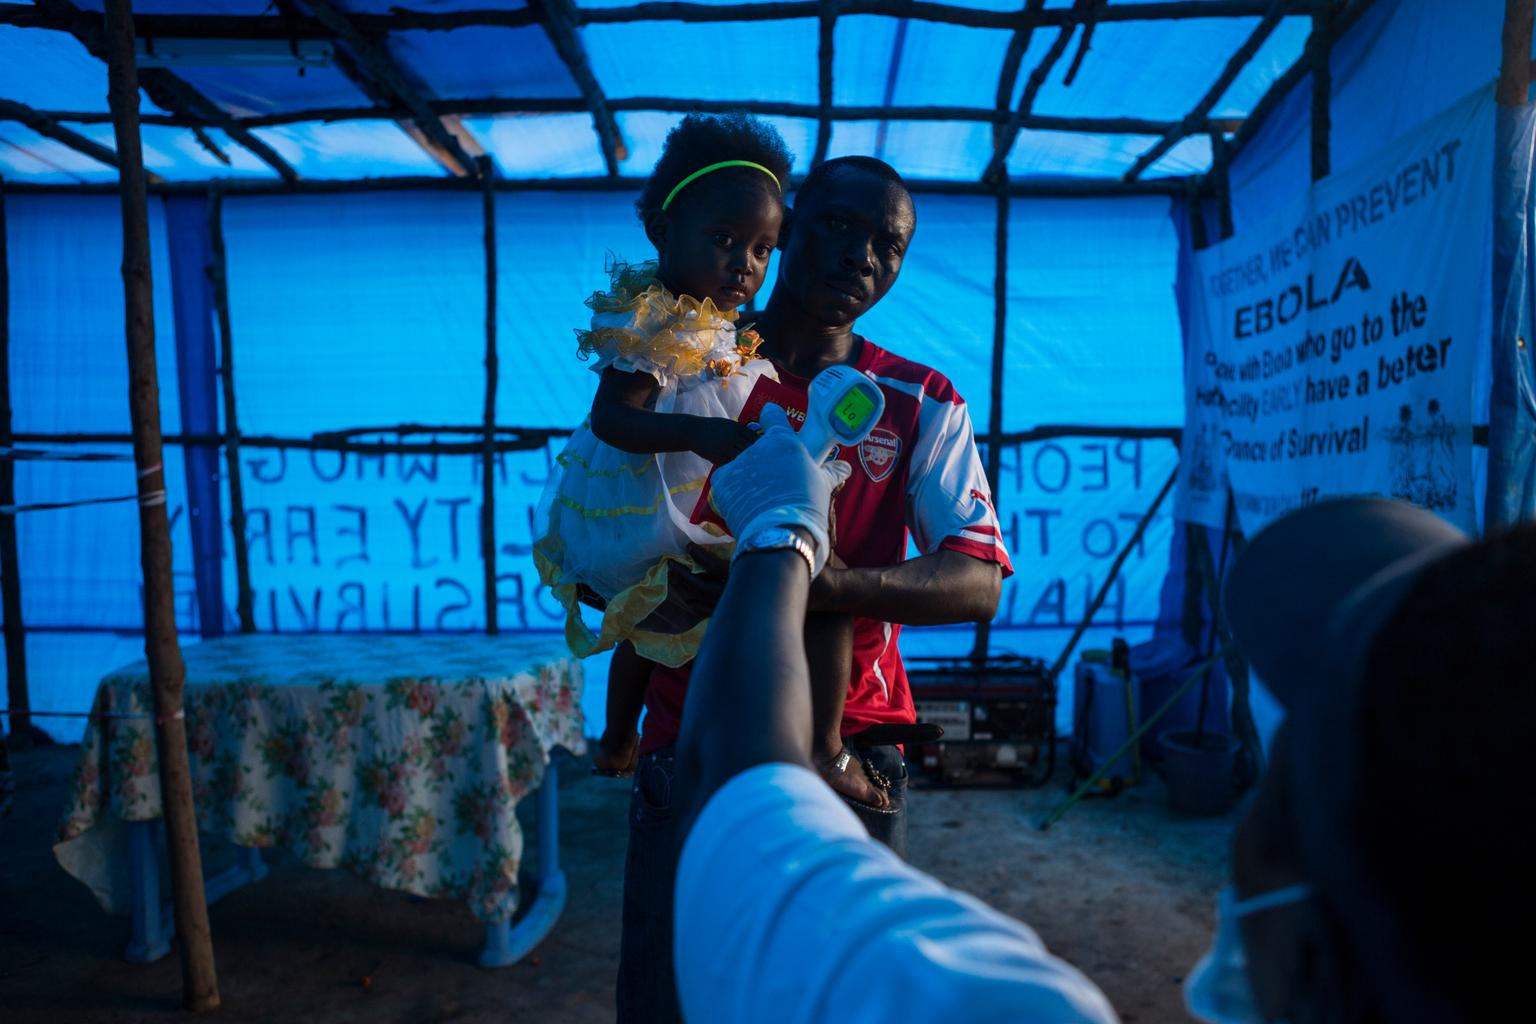 A man and young girl undergo temperature screenings at a checkpoint between the cities of Waterloo and Freetown. Travellers seeking to enter the capital are being screened at the checkpoint for signs of Ebola virus.